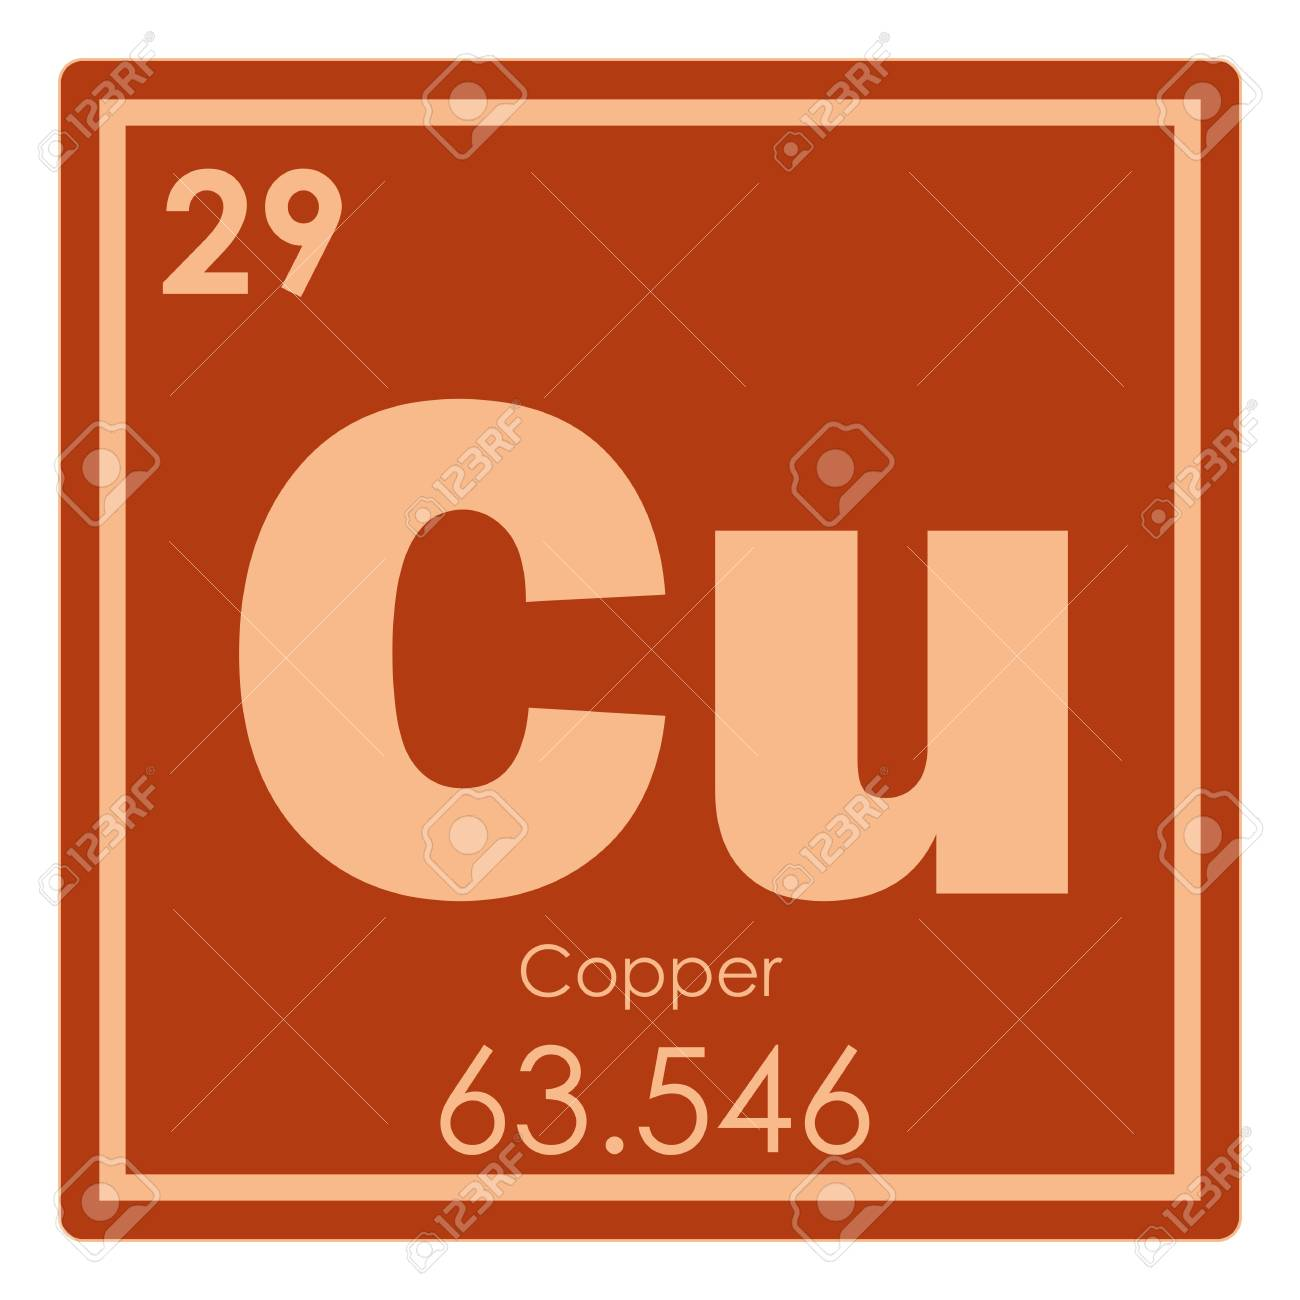 Copper Chemical Element Periodic Table Science Symbol Stock Photo